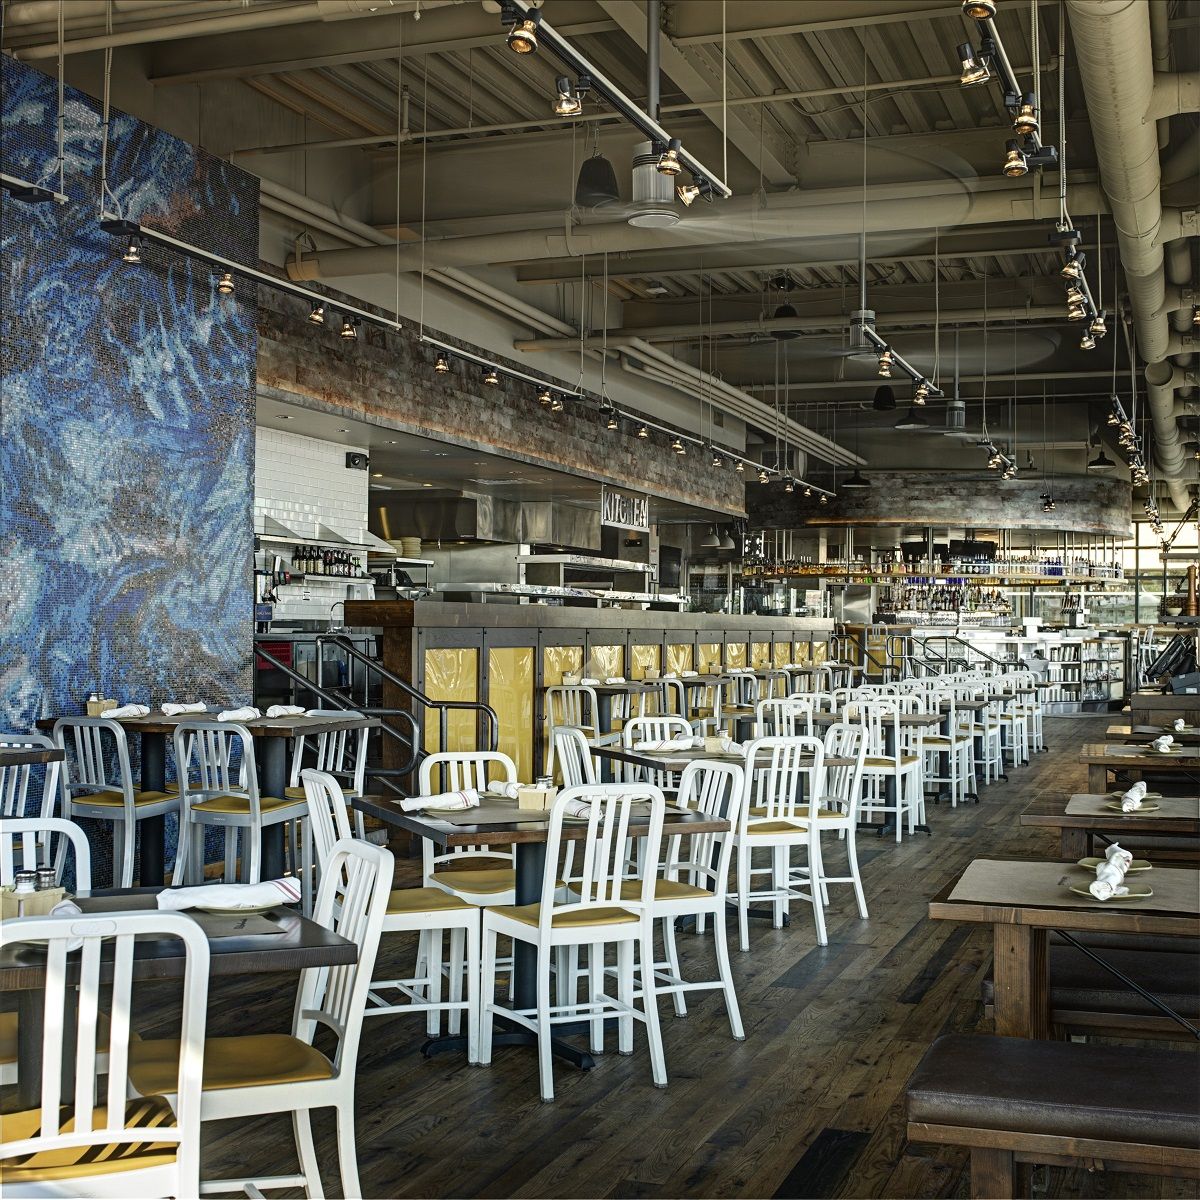 Best cuisine in the seaport district jack conway blog for Fish restaurant boston